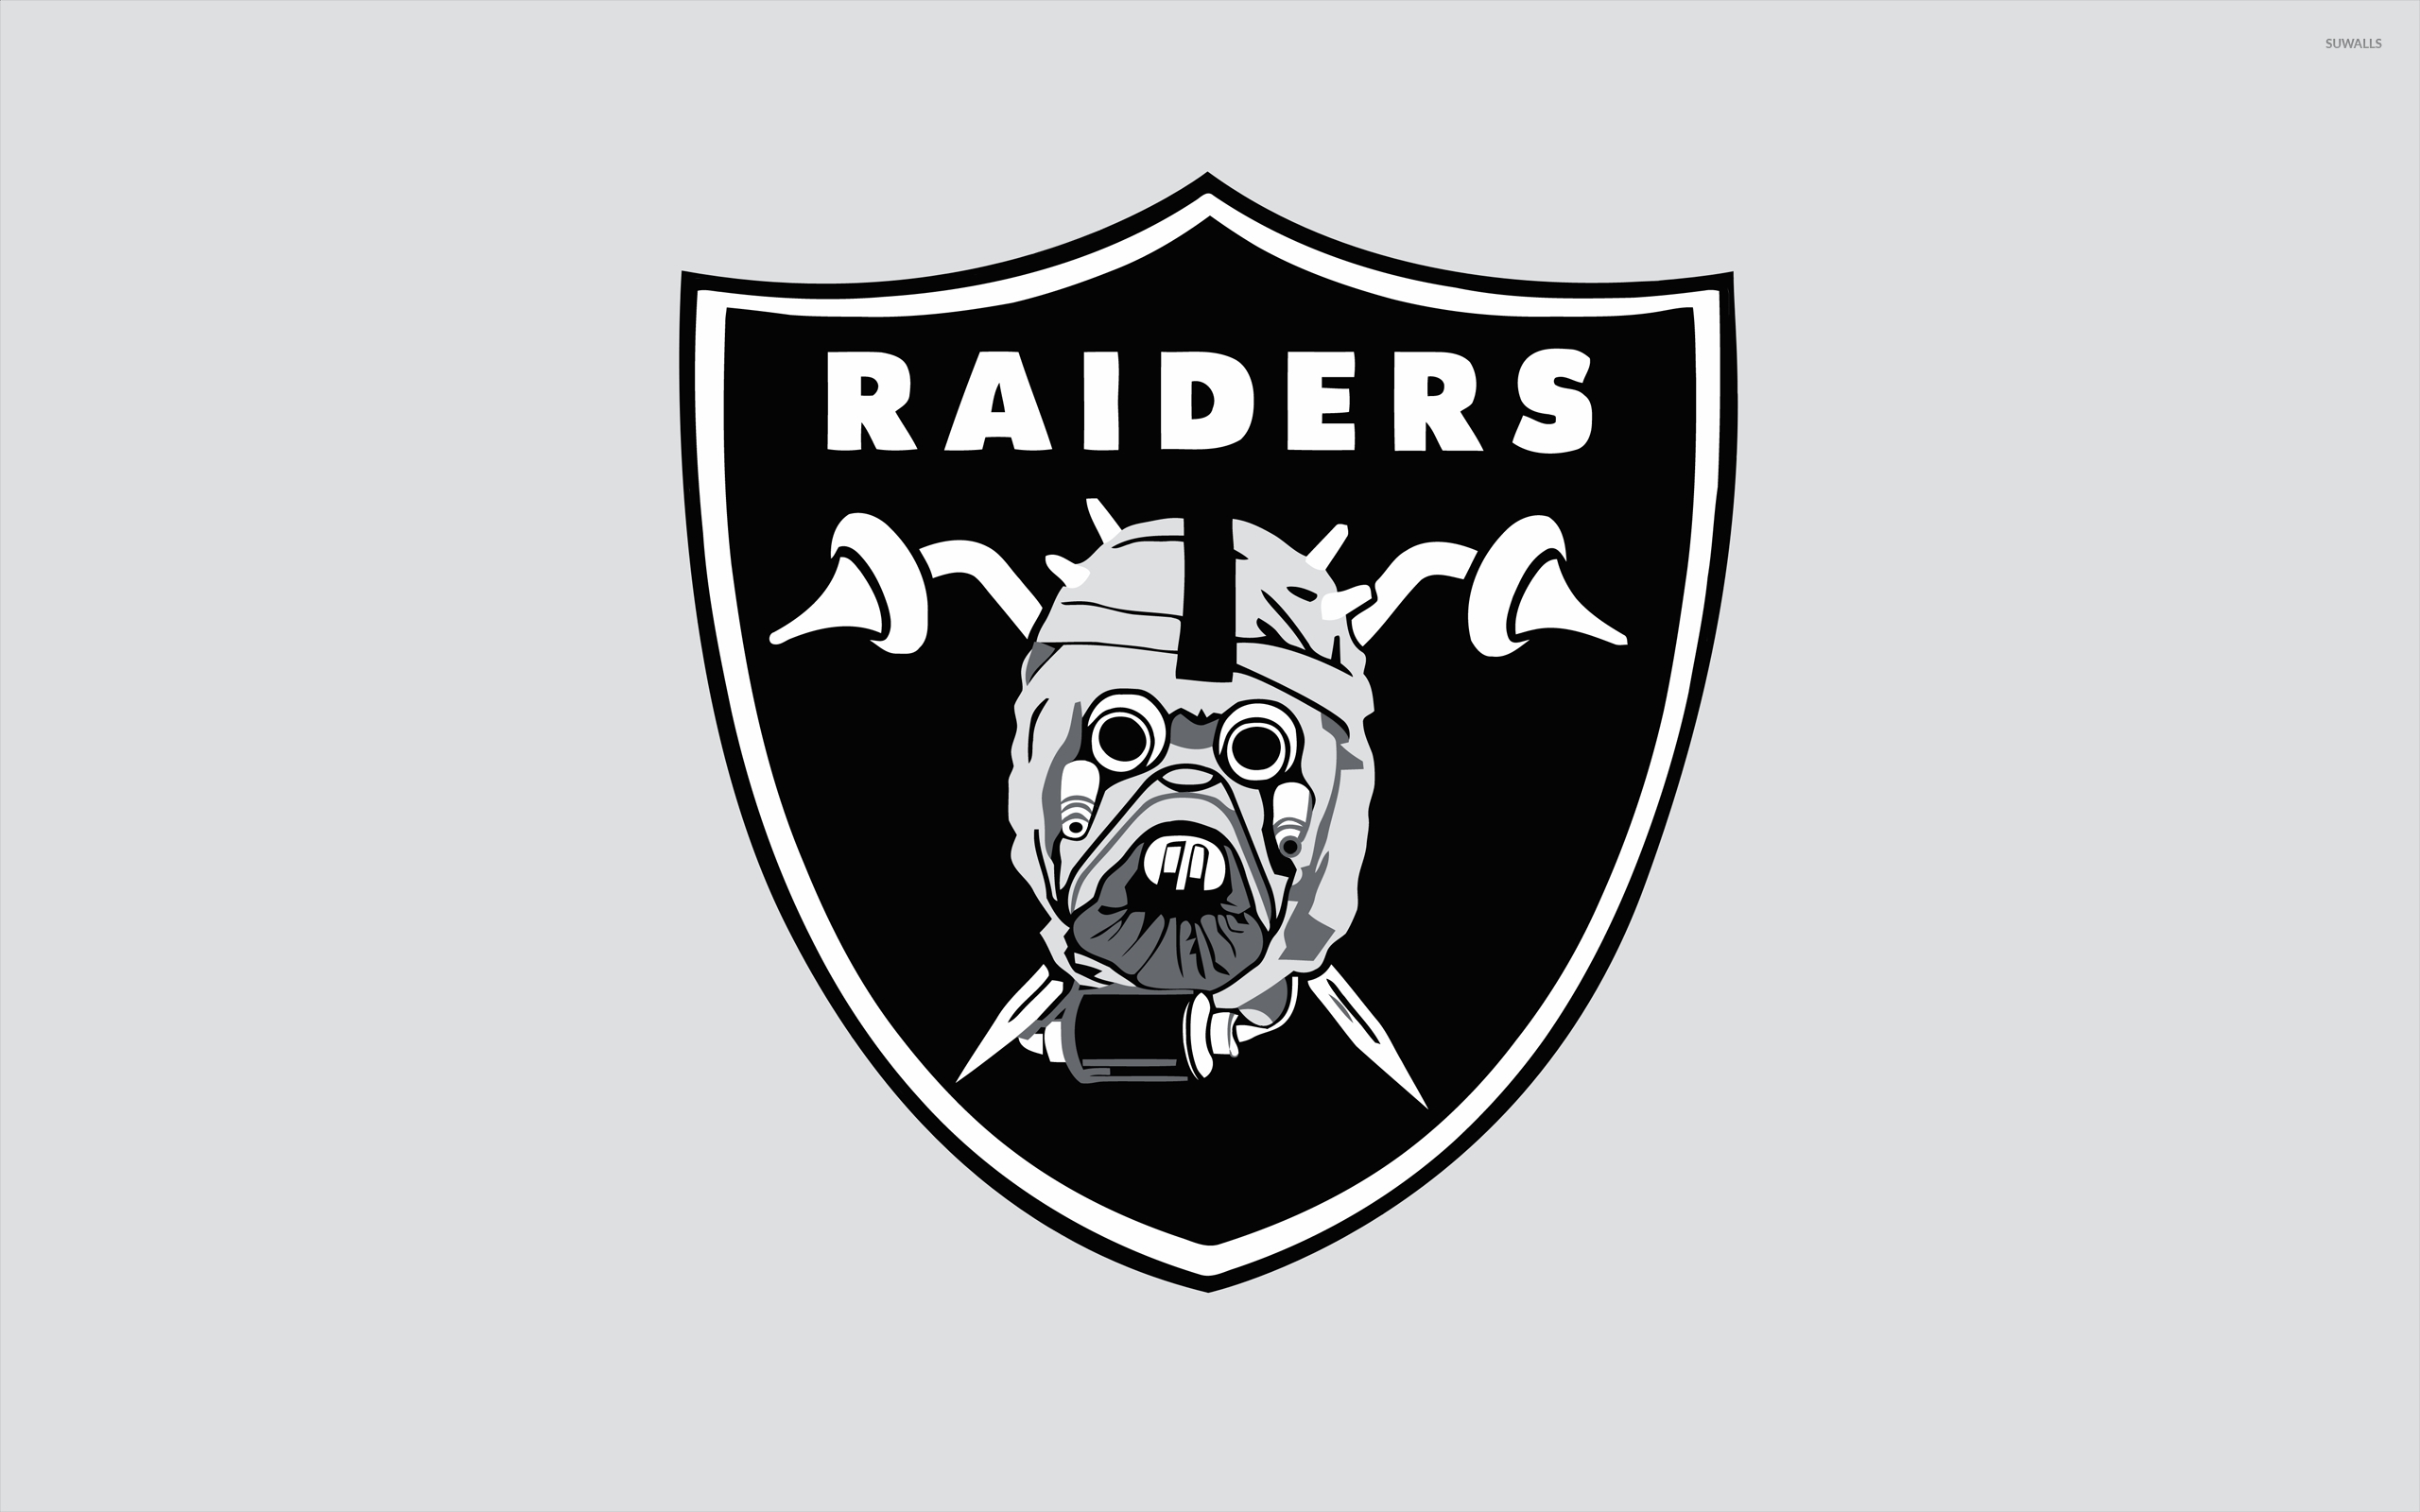 Oakland Raiders wallpaper Sport wallpapers 42666